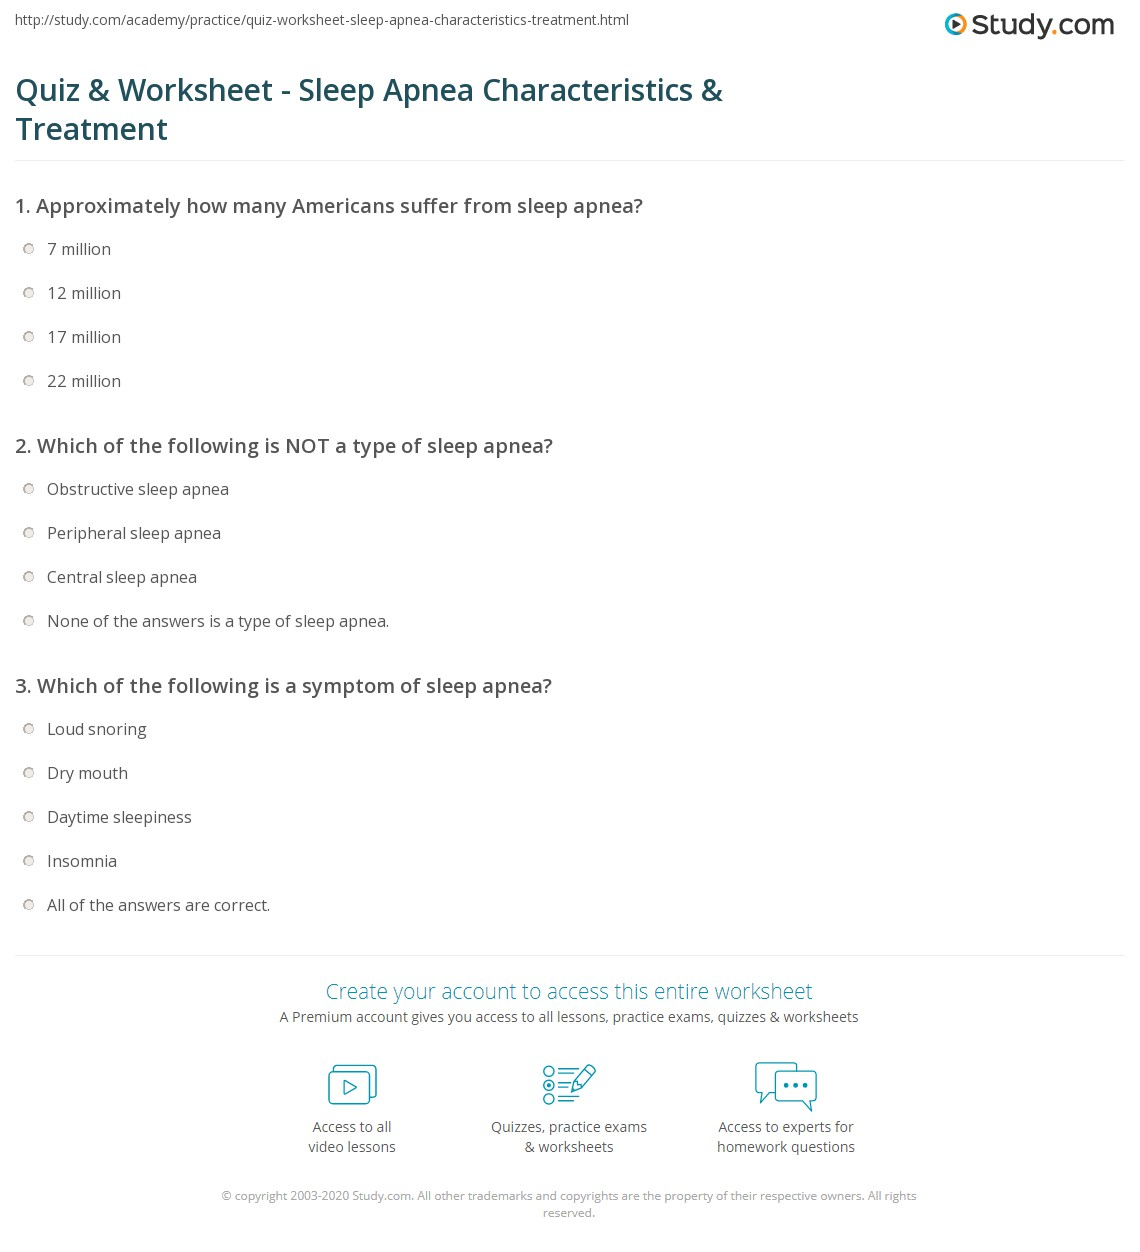 quiz & worksheet - sleep apnea characteristics & treatment | study